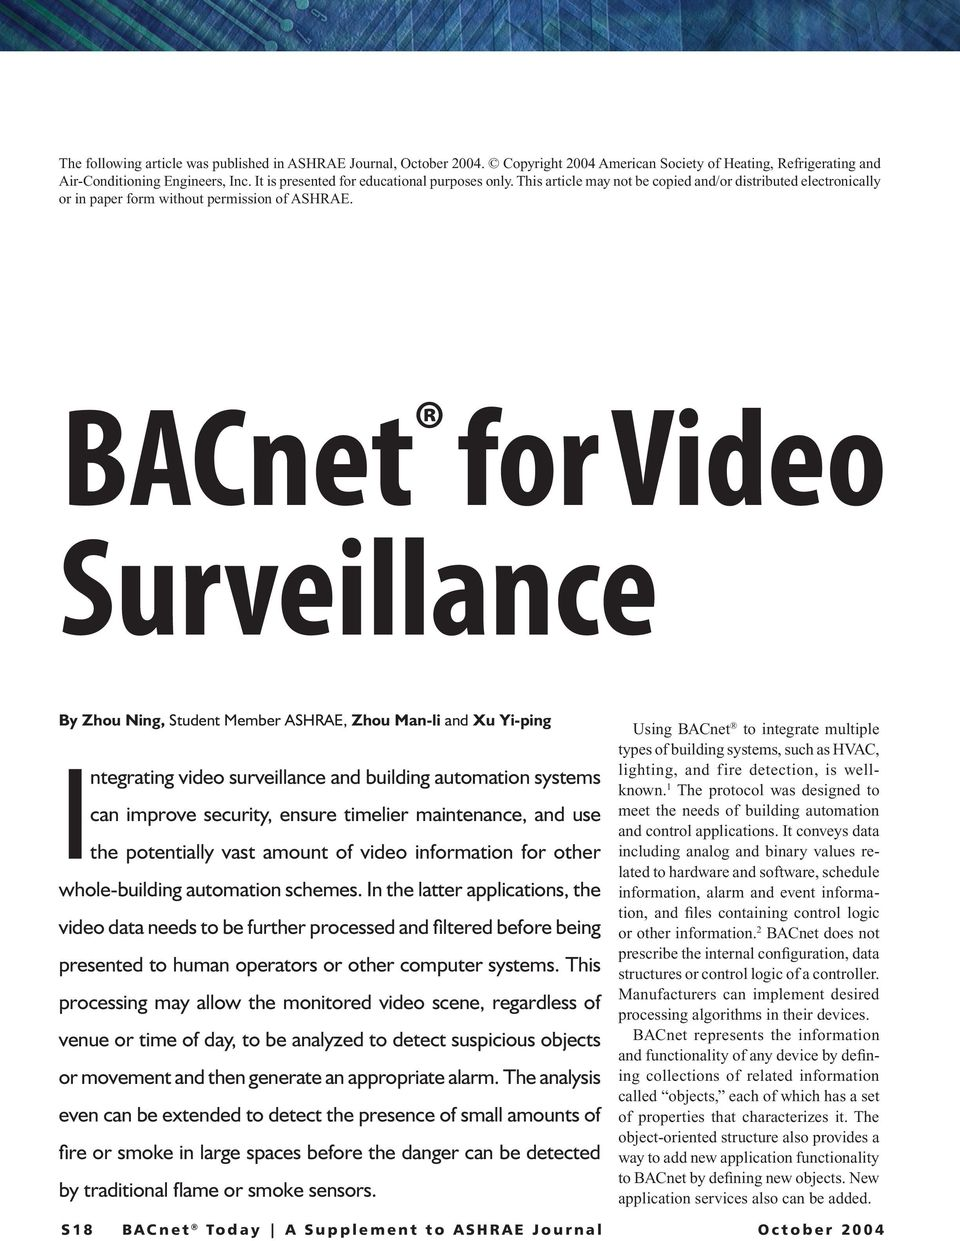 BACnet for Video Surveillance By Zhou Ning, Student Member ASHRAE, Zhou Man-li and Xu Yi-ping Integrating video surveillance and building automation systems can improve security, ensure timelier